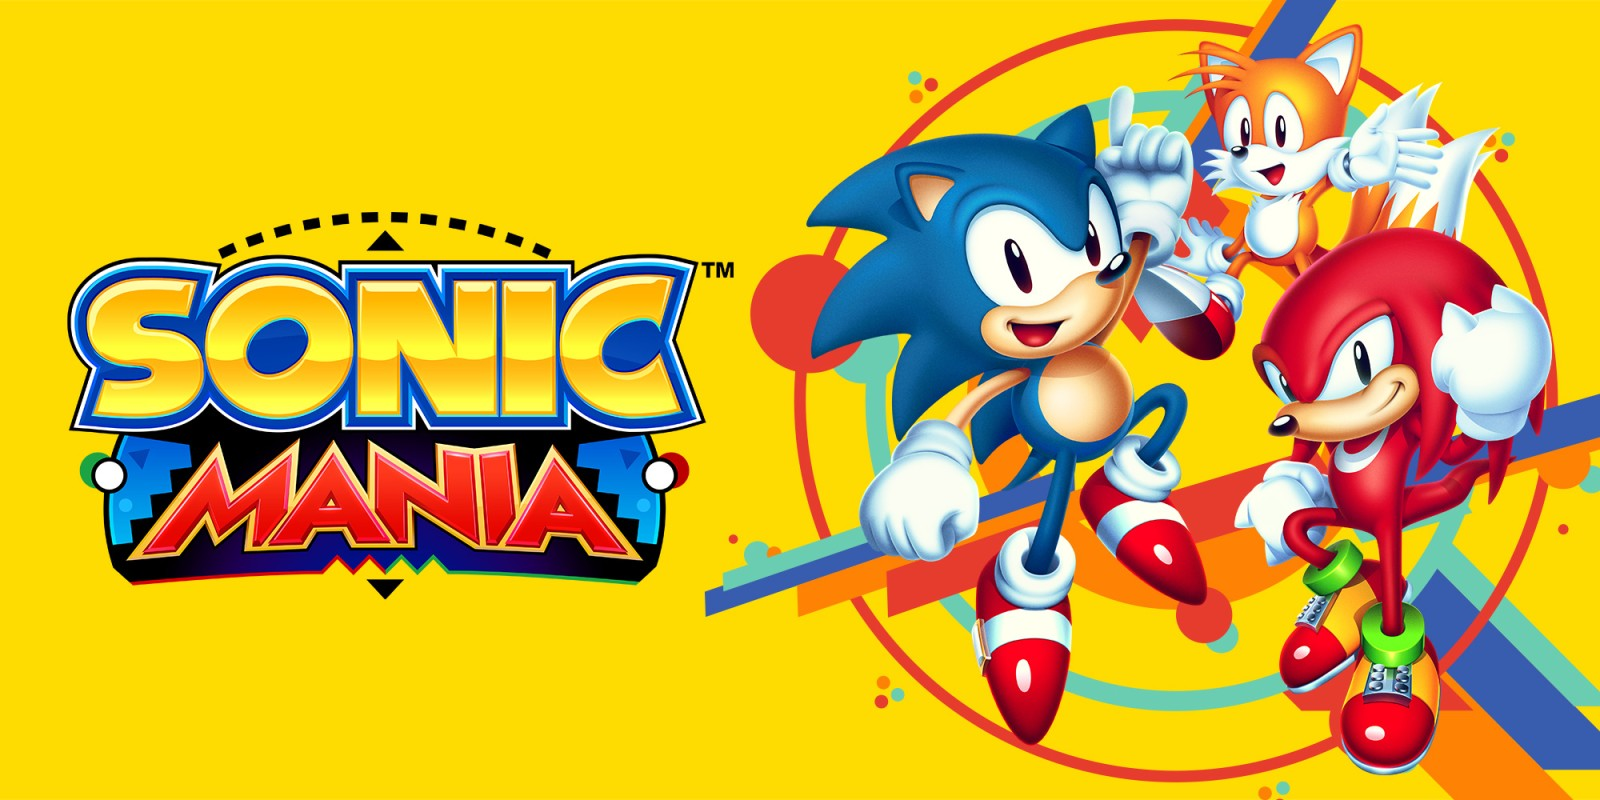 Load your Switch with SEGA games from $1: Sonic Racing/Mania, Valkyria, more